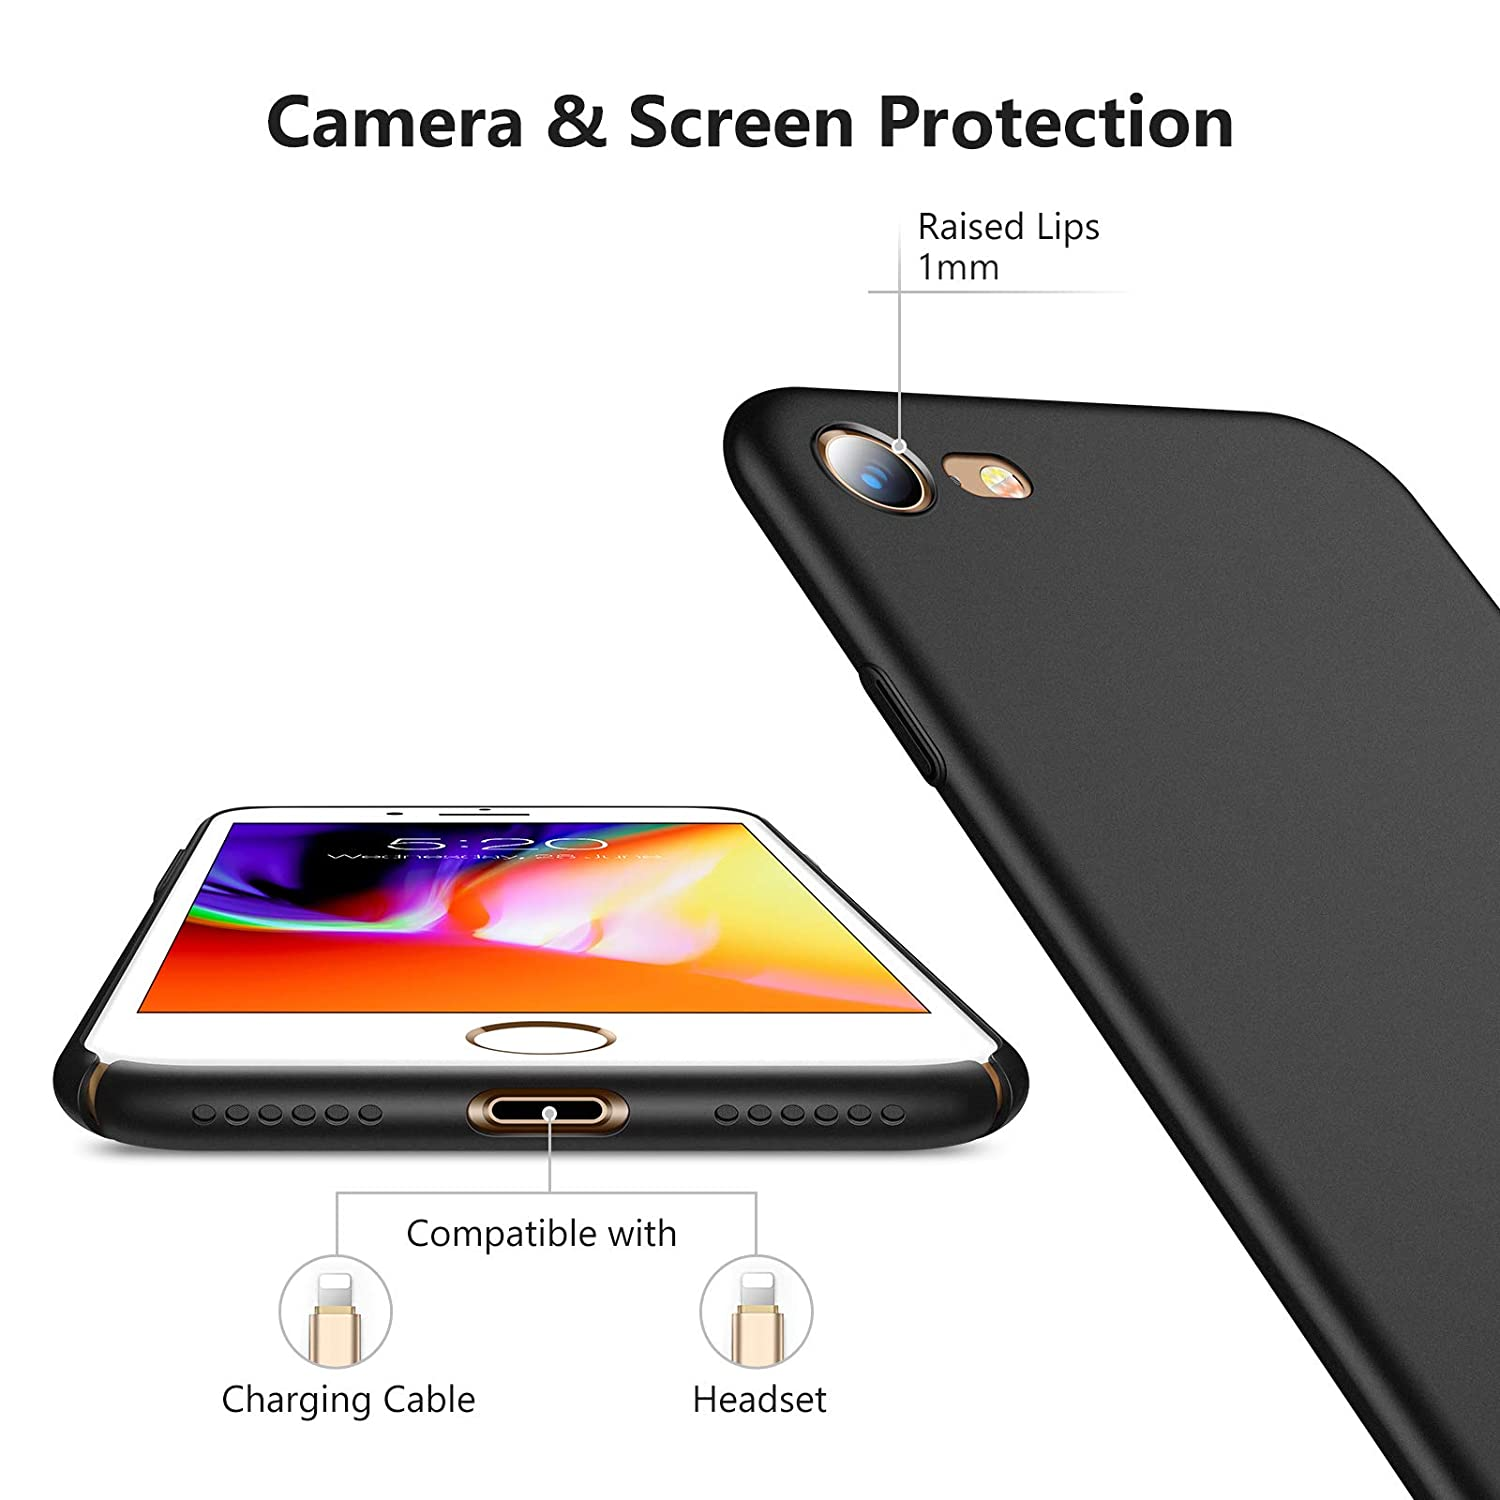 sports shoes 3cb92 1673c TORRAS Slim Fit iPhone 8 Case/iPhone 7 Case, Hard Plastic Full Protective  Anti-Scratch Resistant Cover Case Compatible with iPhone 7 (2016)/iPhone 8  ...